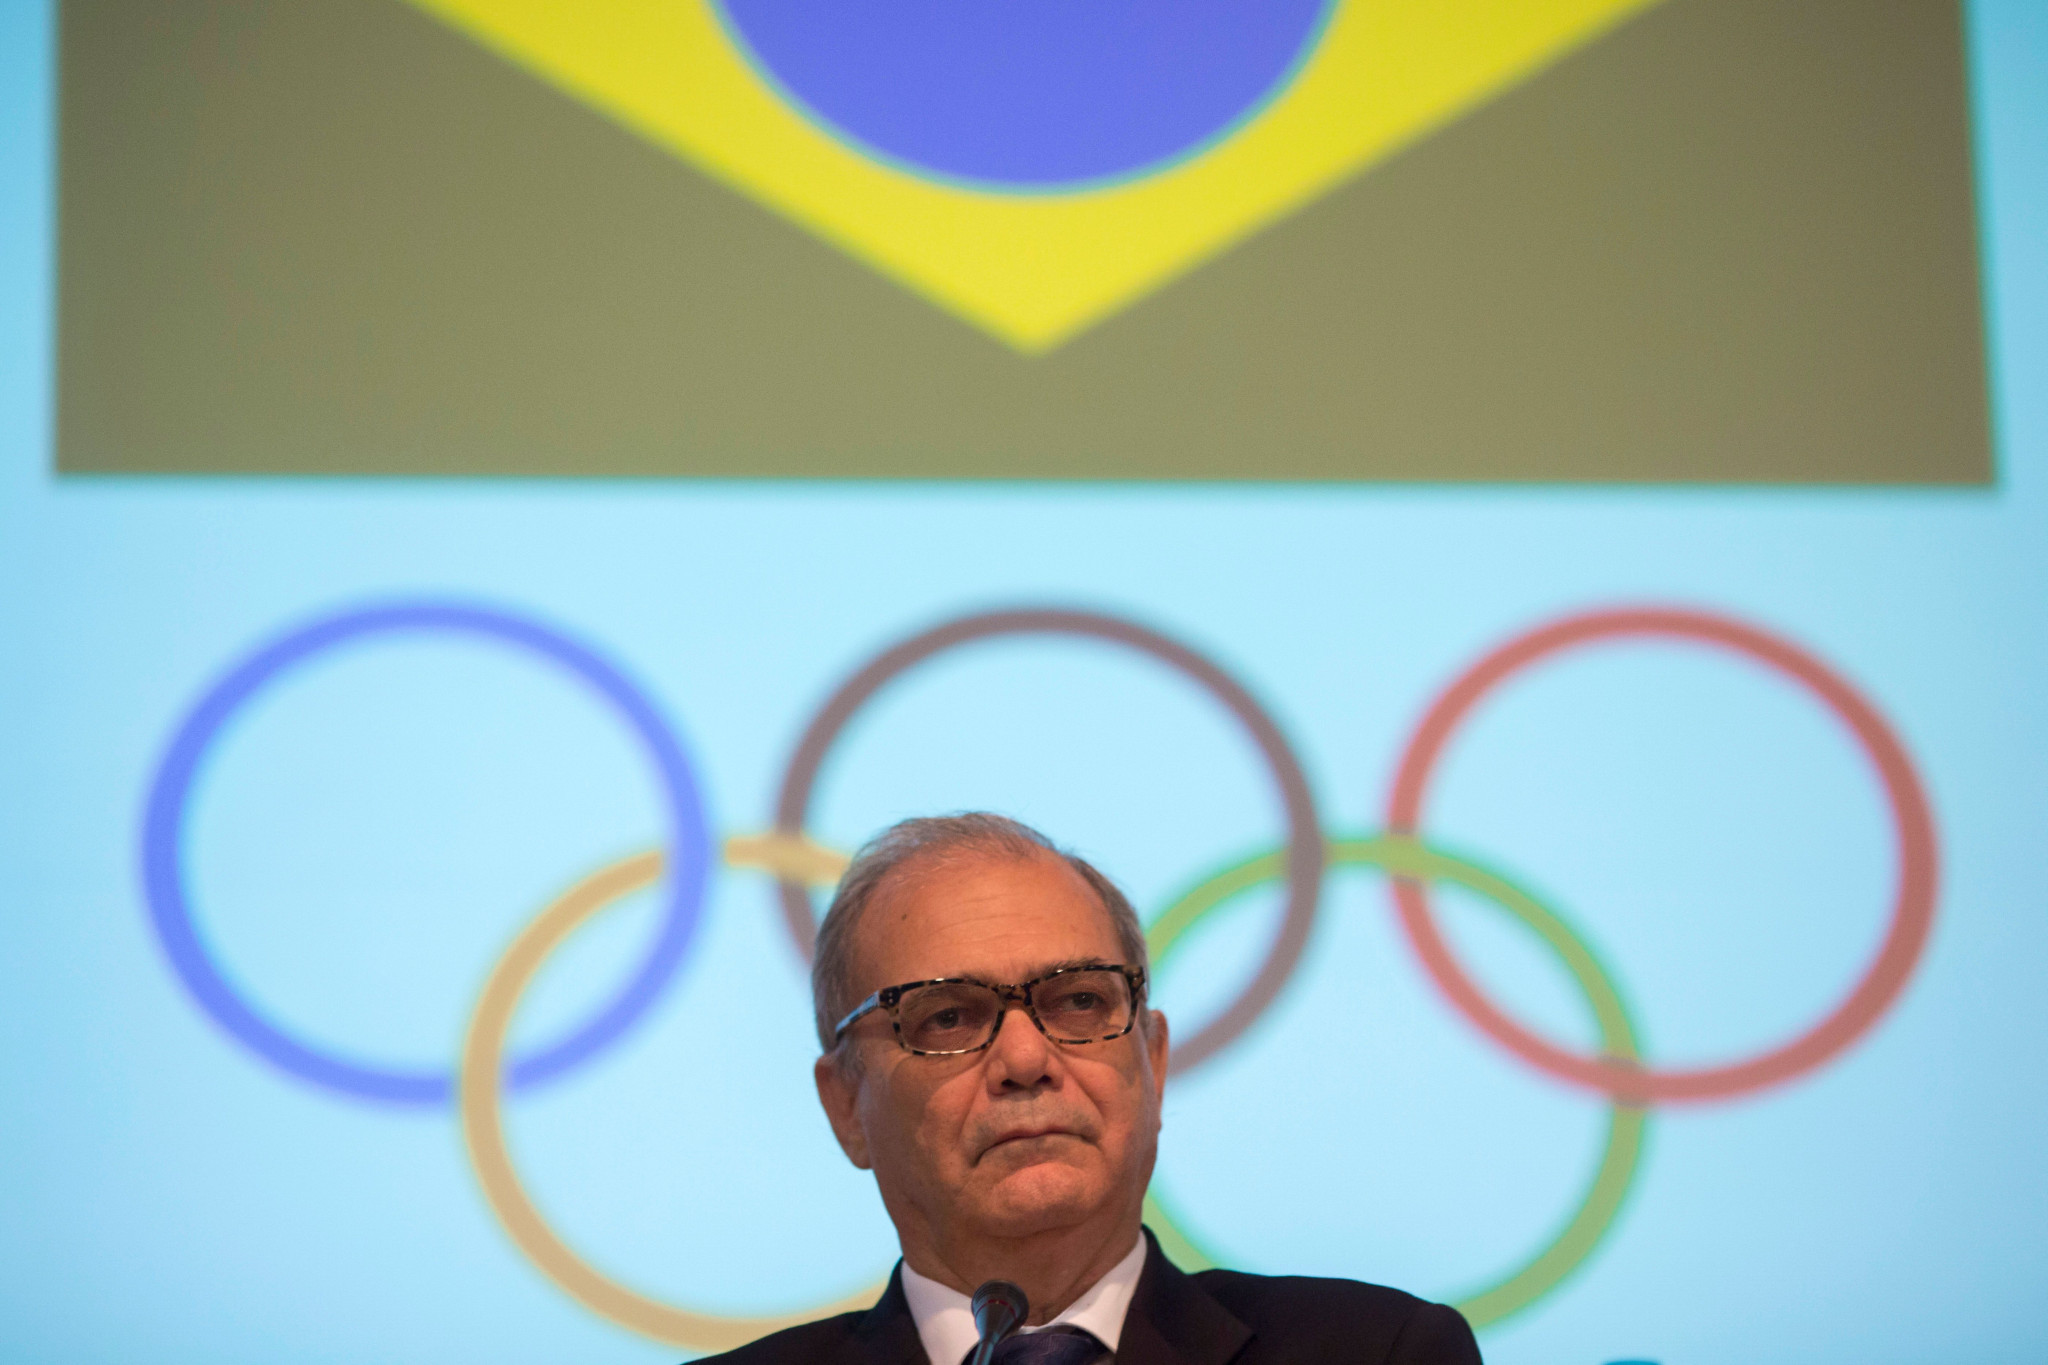 Paulo Wanderley has already replaced Carlos Nuzman as President of the Brazilian Olympic Committee ©Getty Images